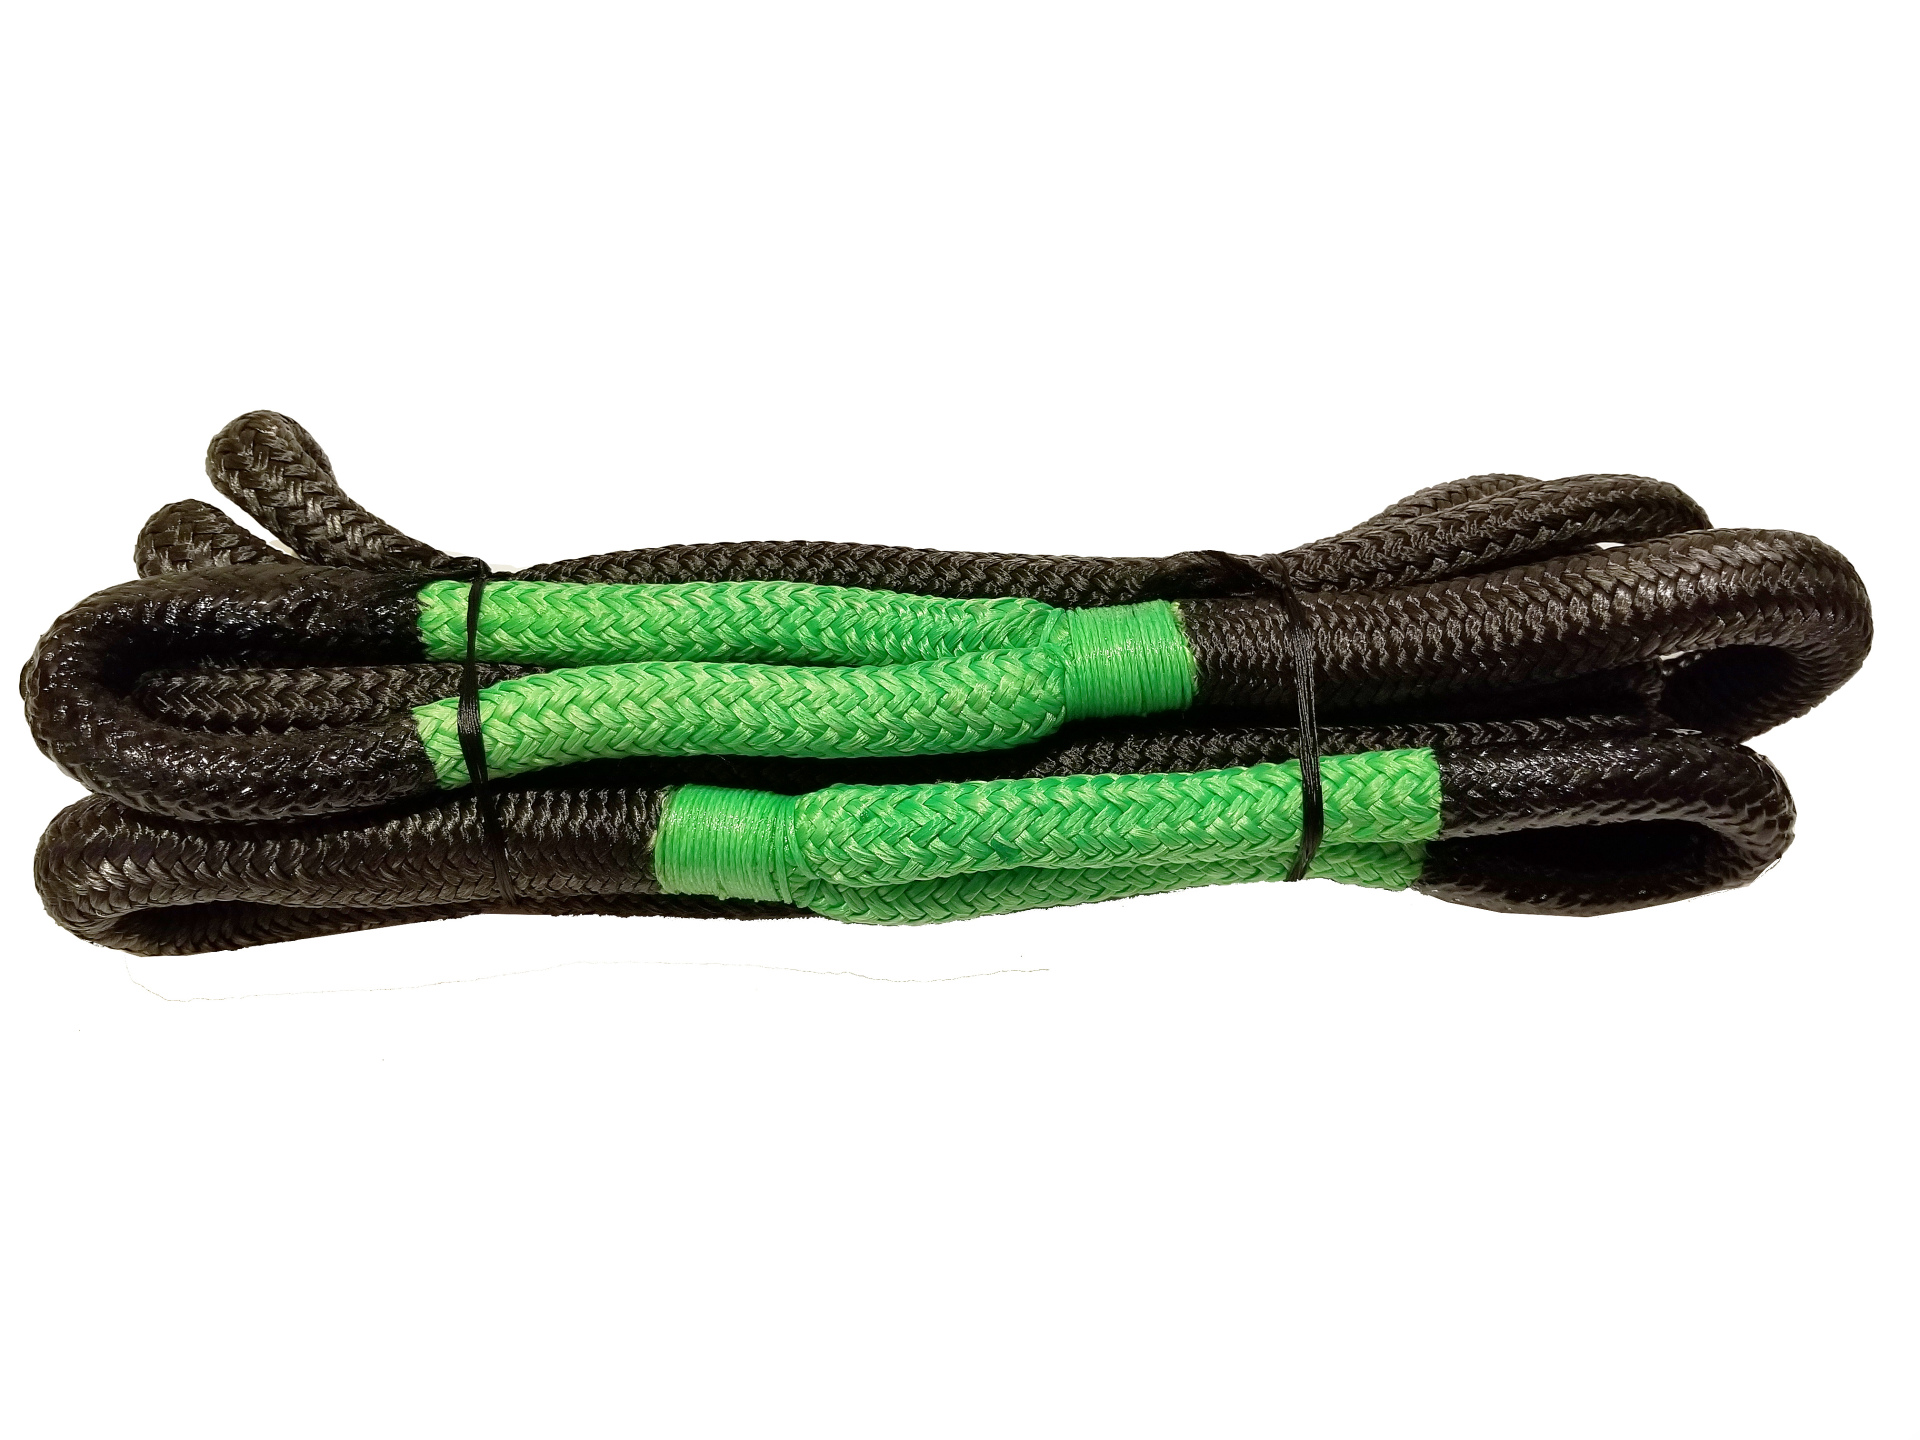 3/4 X 20 Kinetic Rope Green with black